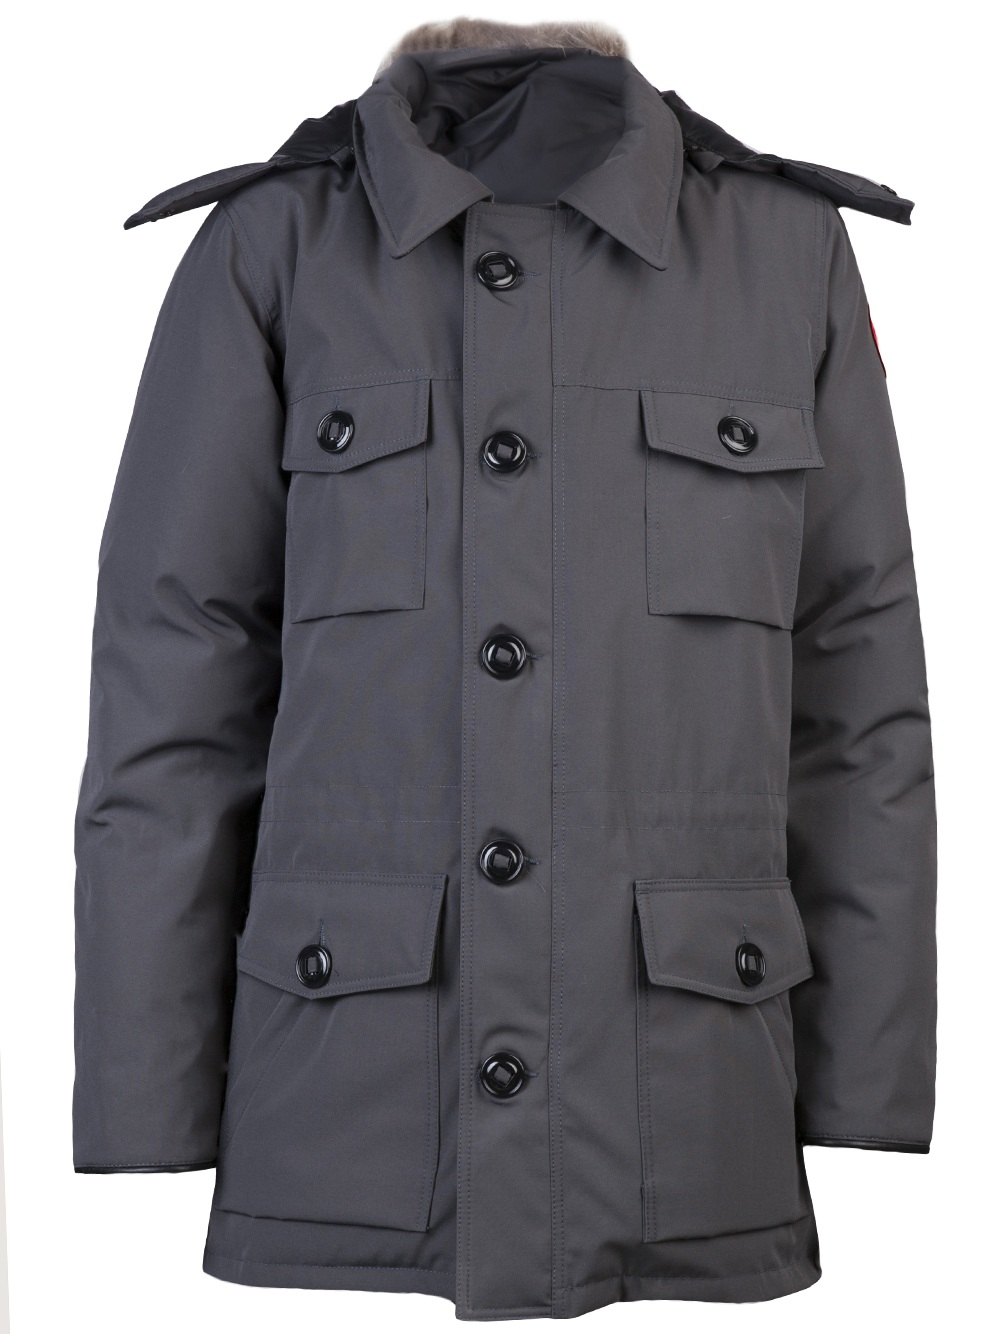 194b5a062d84 ... promo code for canada goose banff parka in gray for men lyst 3bc7c dbf0e